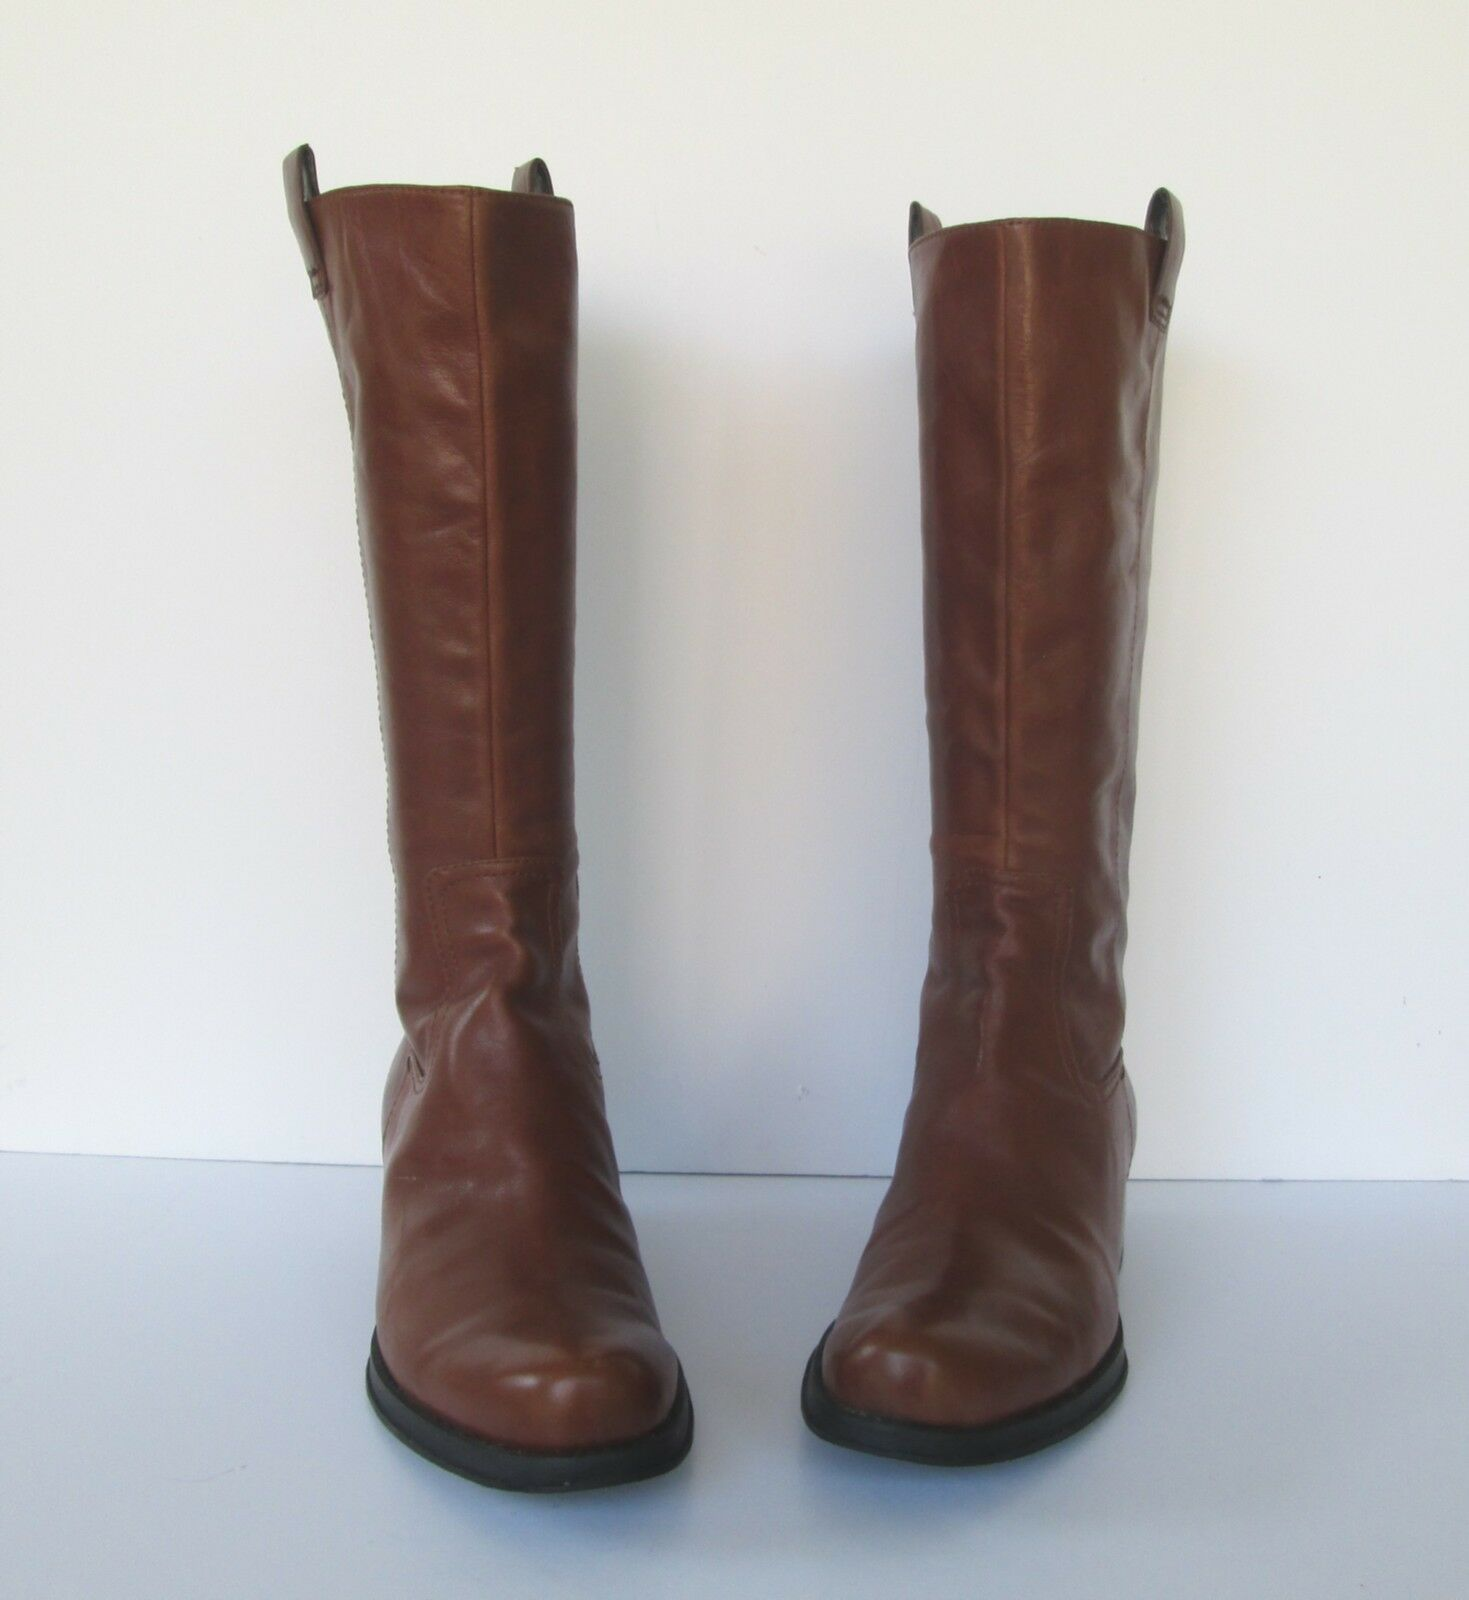 Nine West Damenschuhe Lovely Camel Braun Leder Leder Leder Knee High Riding style Stiefel 10 M 042ada